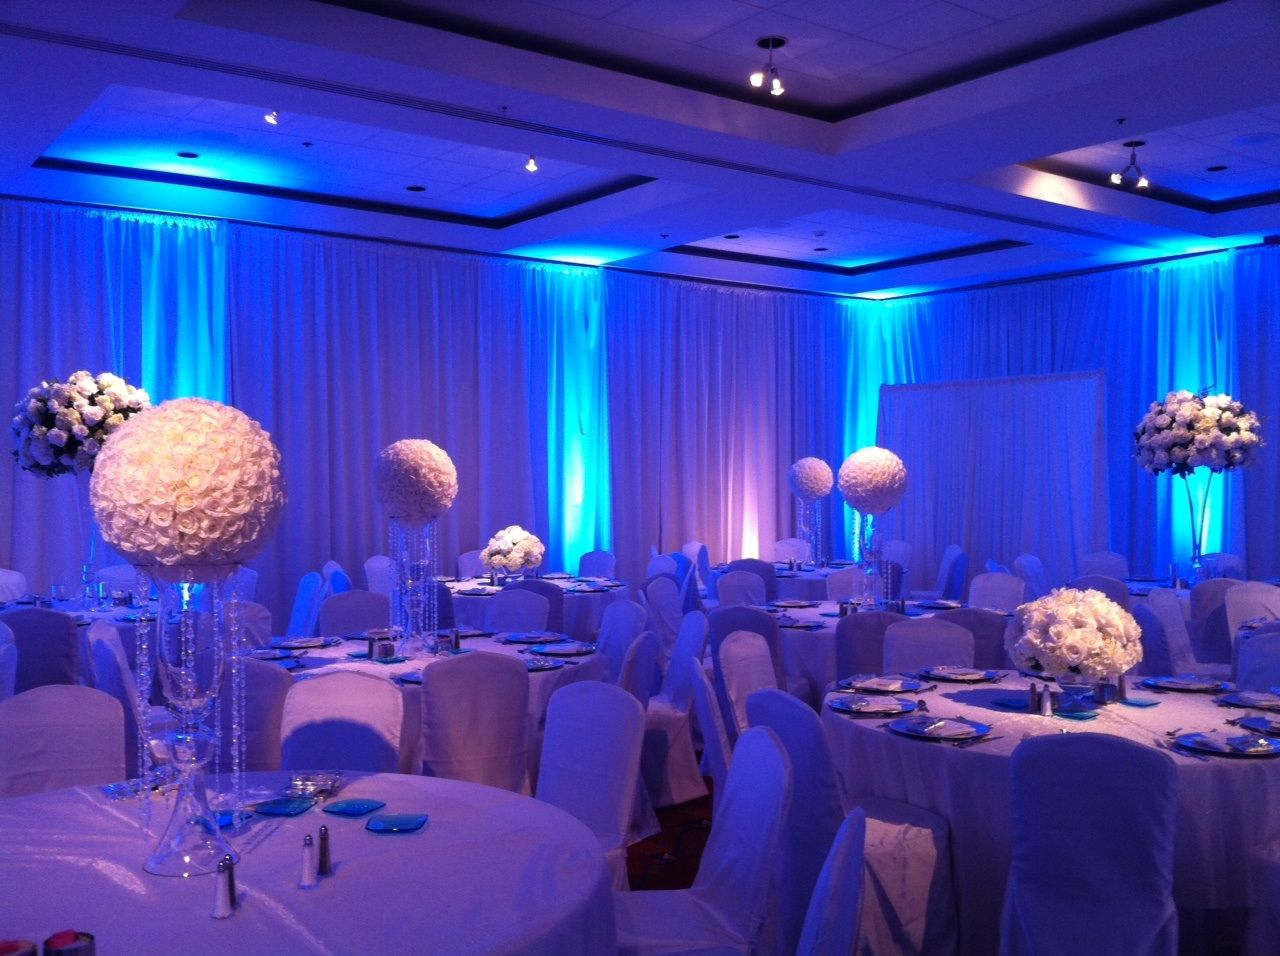 Led Up Lighting By Event Dynamics In Pasadena Md Http Eventdynamics Net Wedding Reception